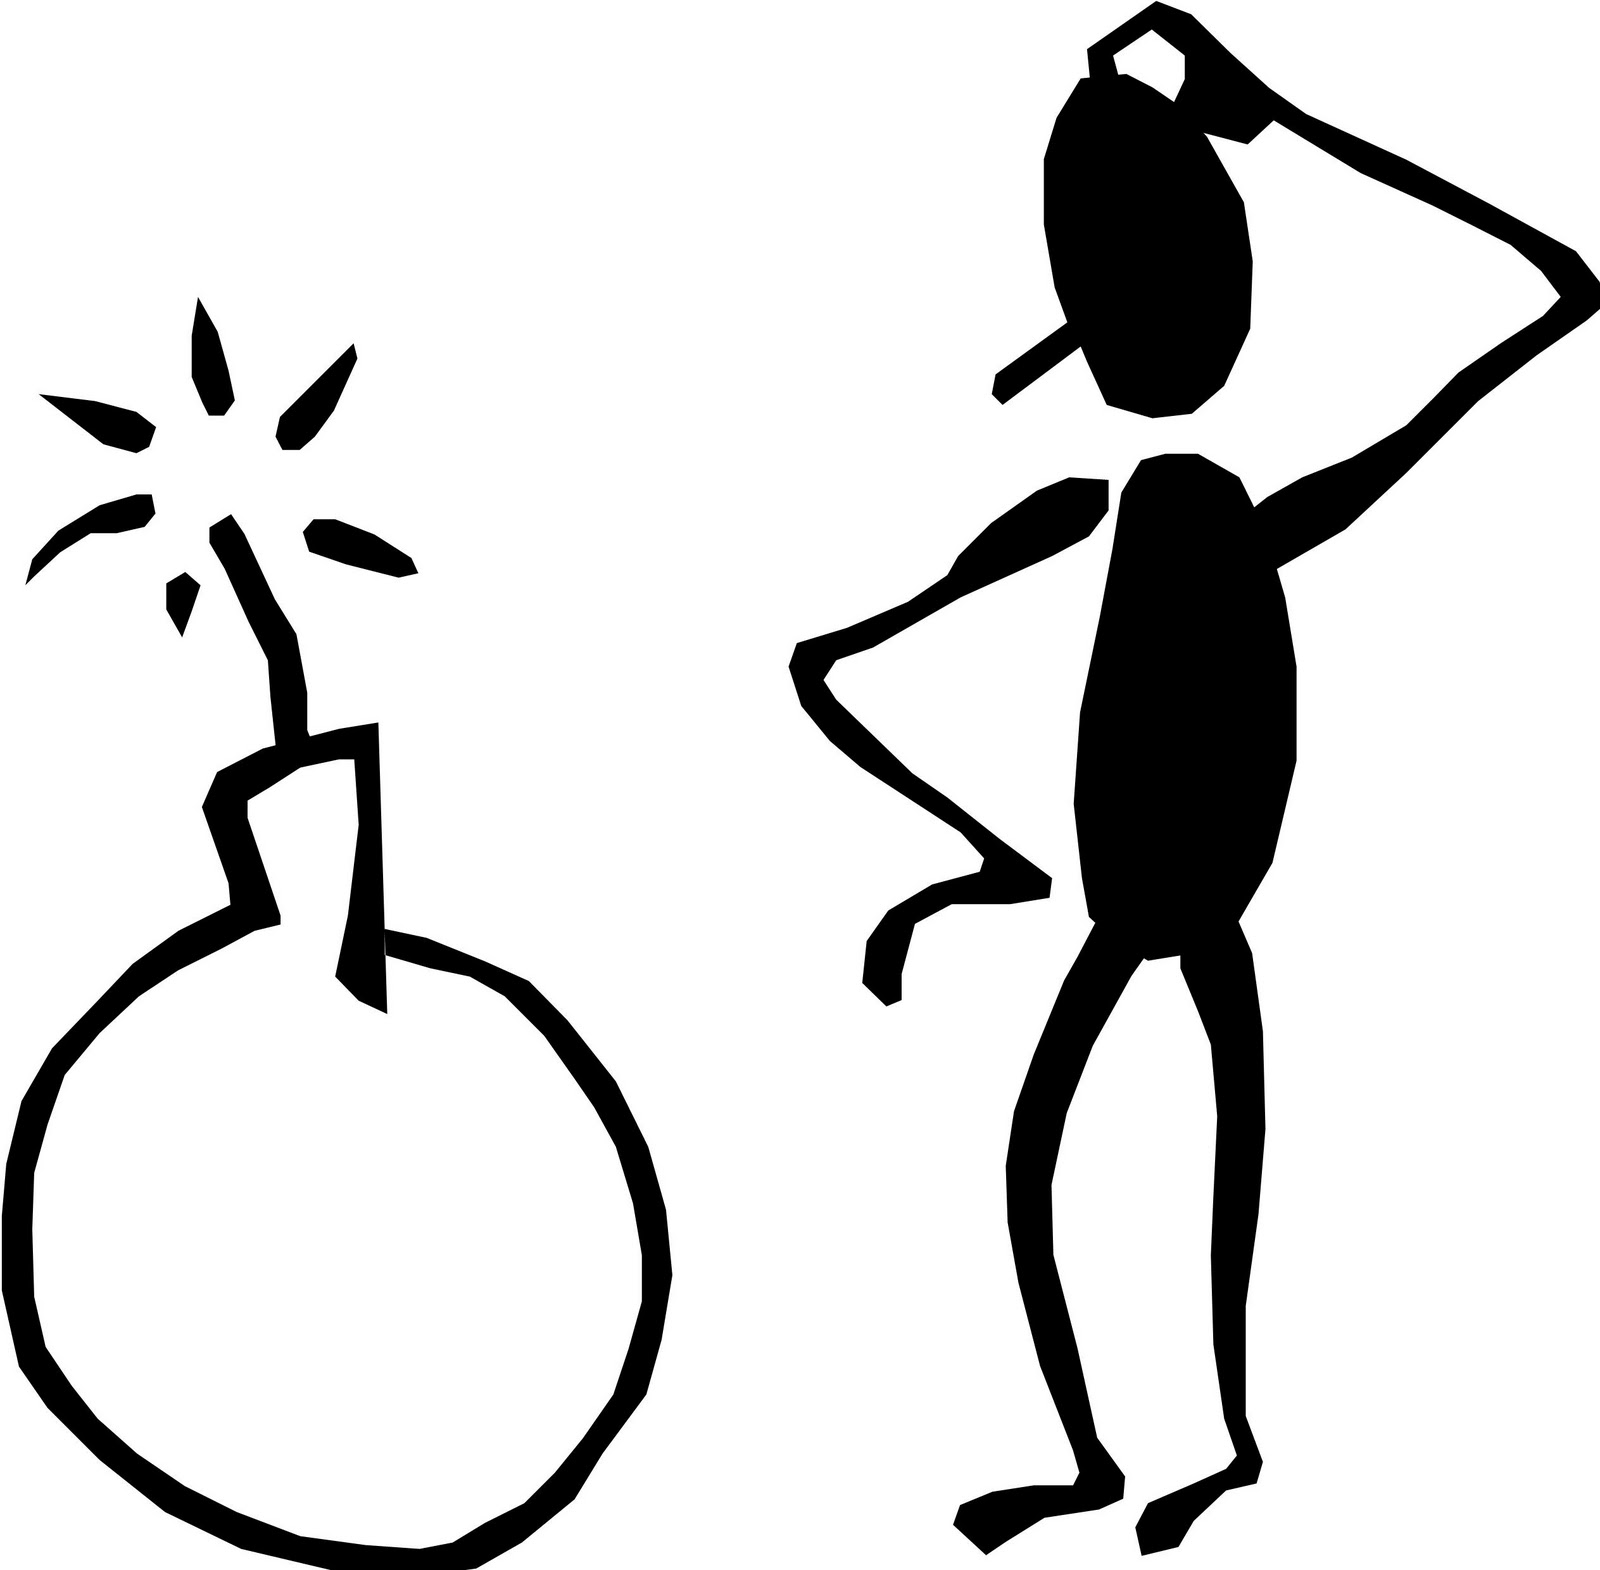 Stick Man Thinking   Clipart Panda   Free Clipart Images